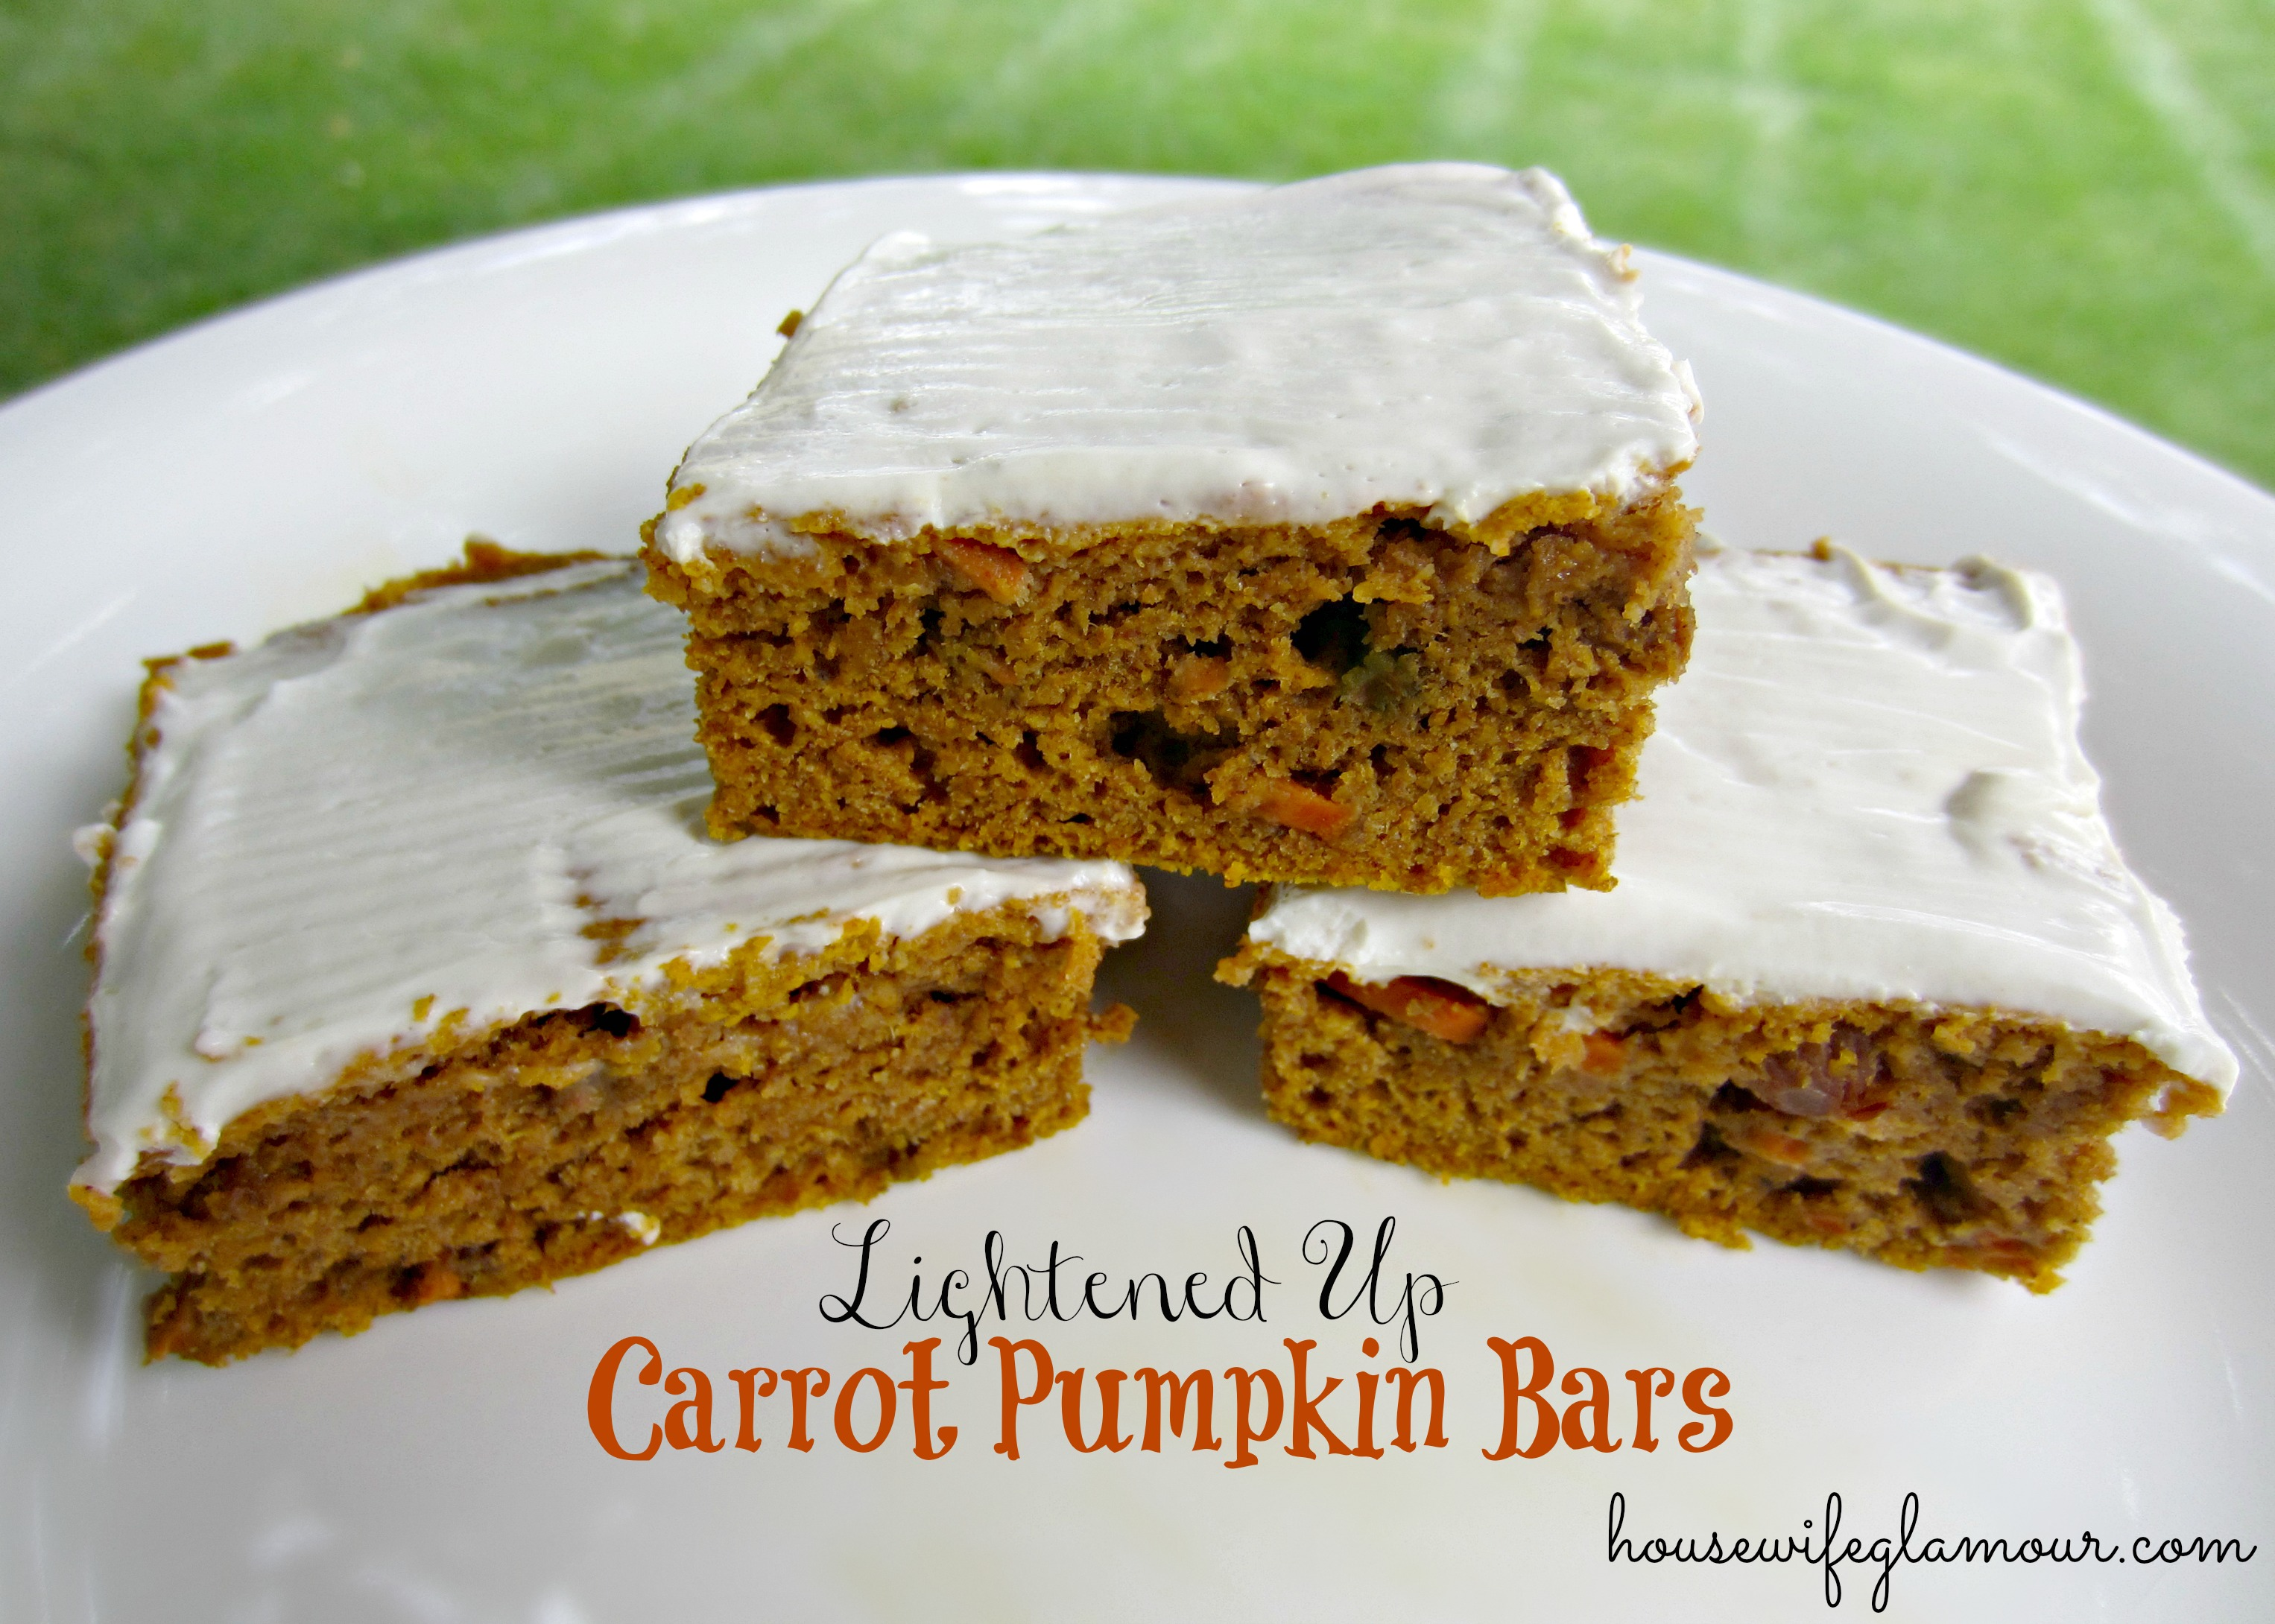 Lightened Up Carrot Pumpkin Bars